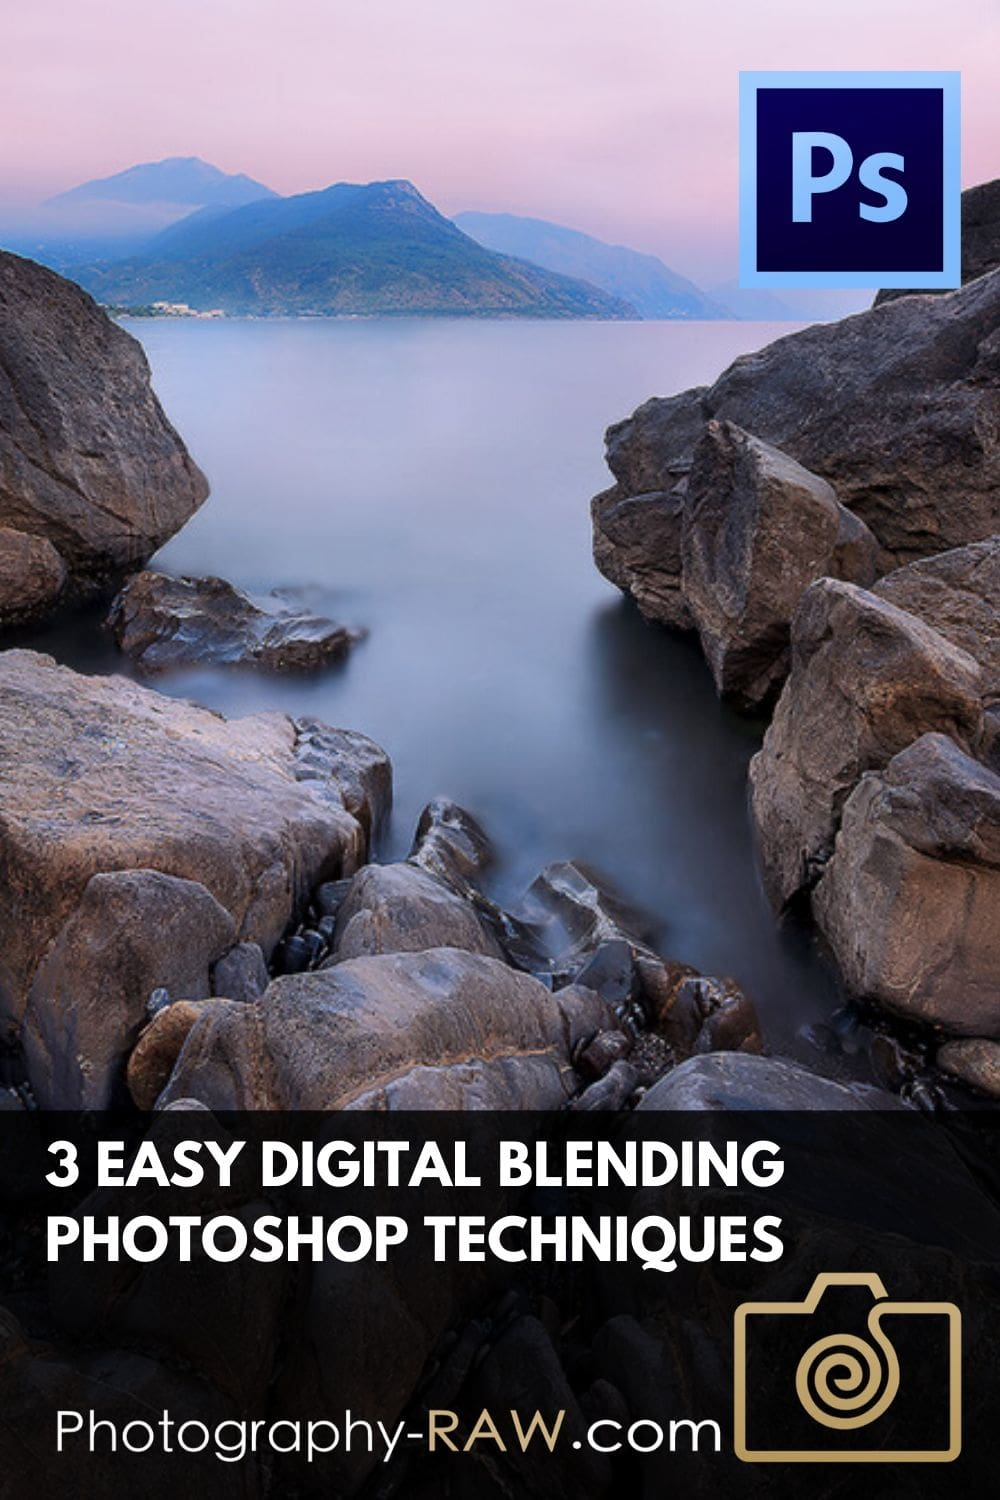 Learn how to blending multiple exposures into a single image in Photoshop. Digital blending is a popular technique used by many landscape photographers.